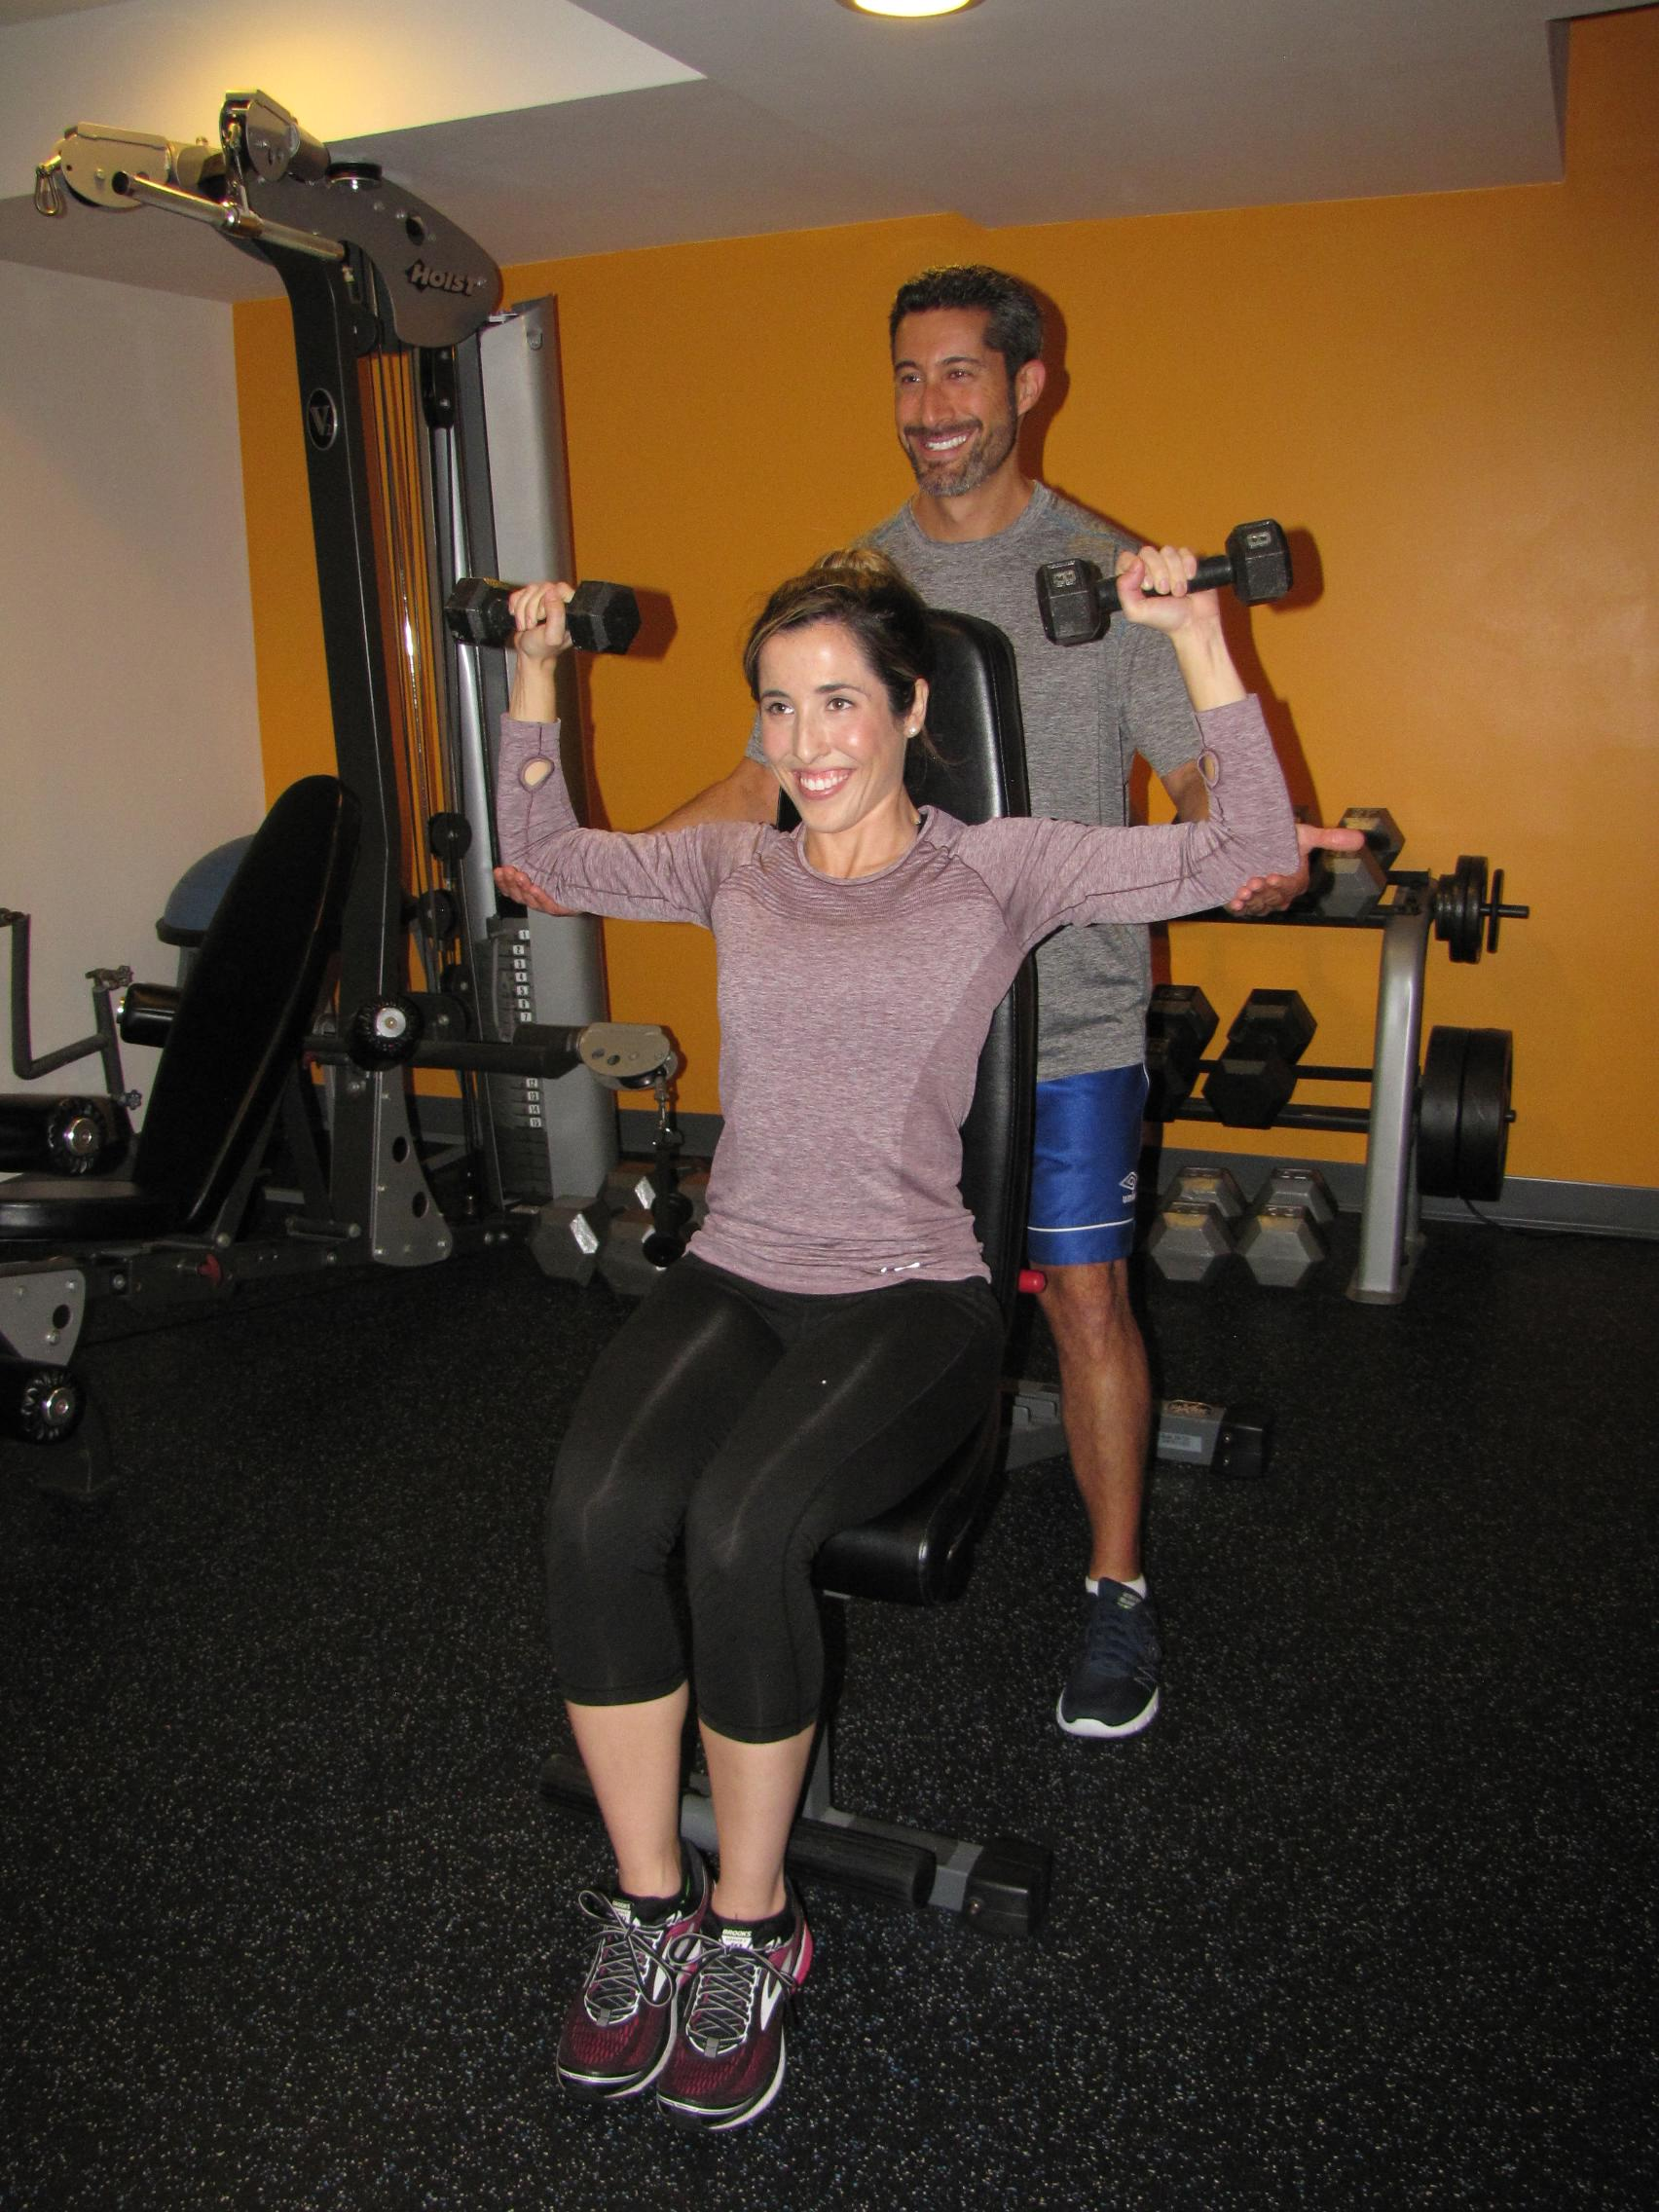 Personal training studio in Madison, Wisconsin